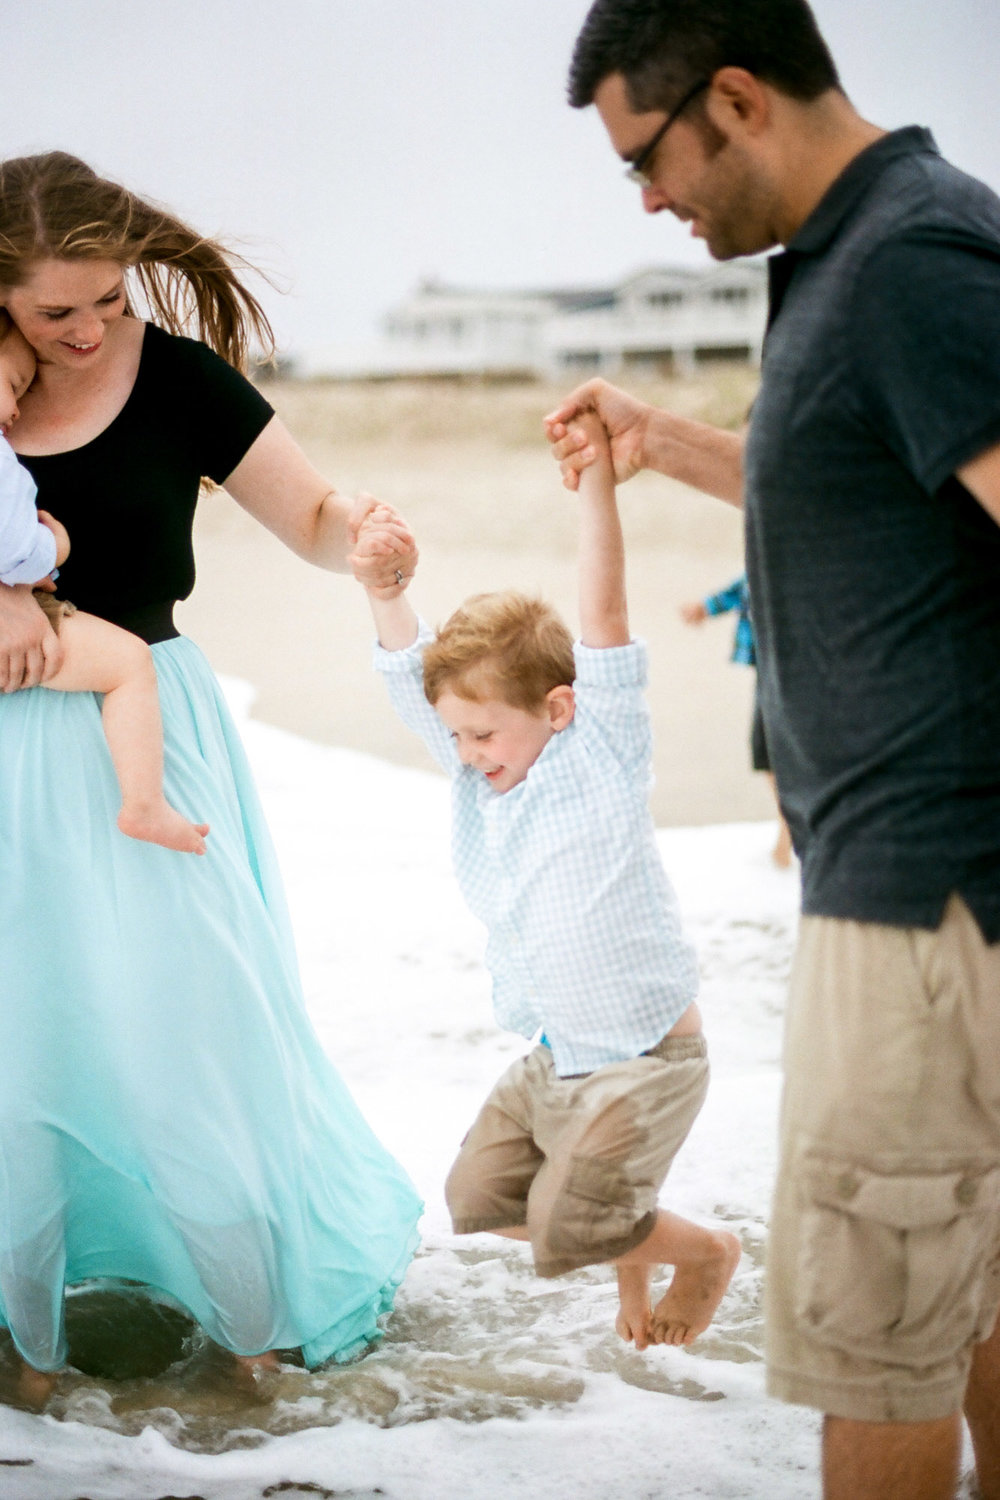 Bethany Beach Family Wedding Photographer-17.jpg